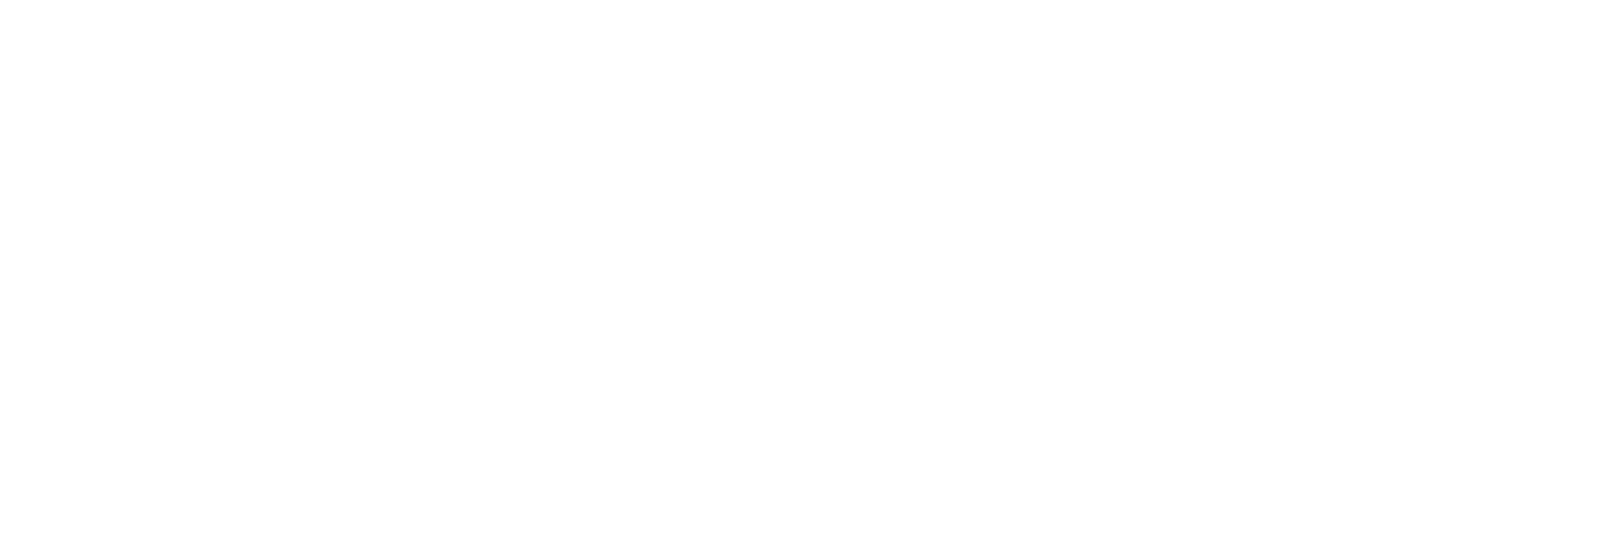 Revolutionary Clinics